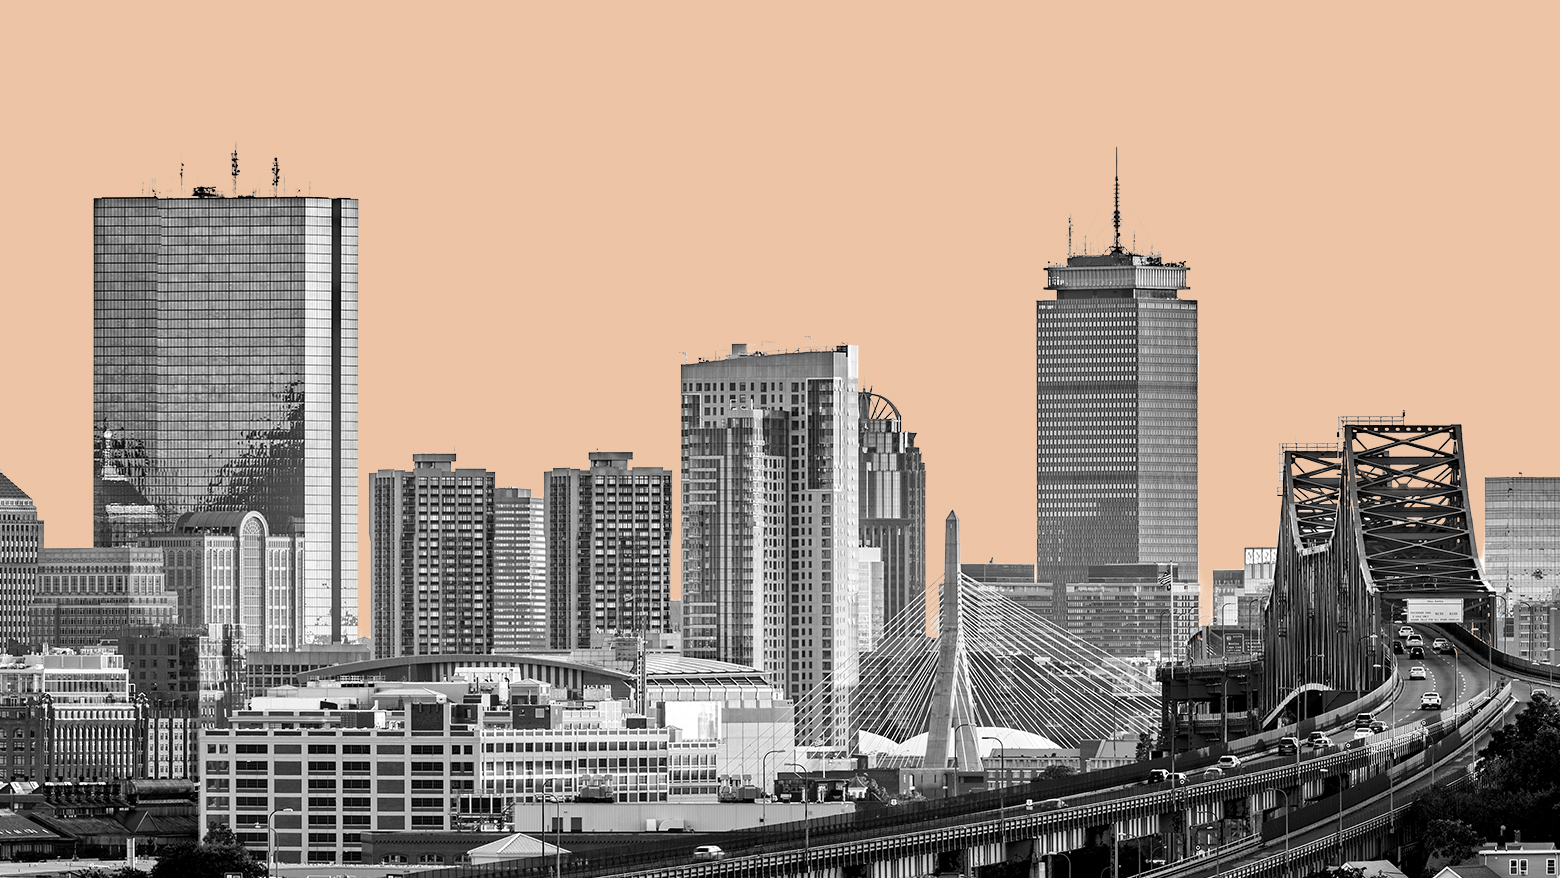 Boston skyline in black and white with peach background